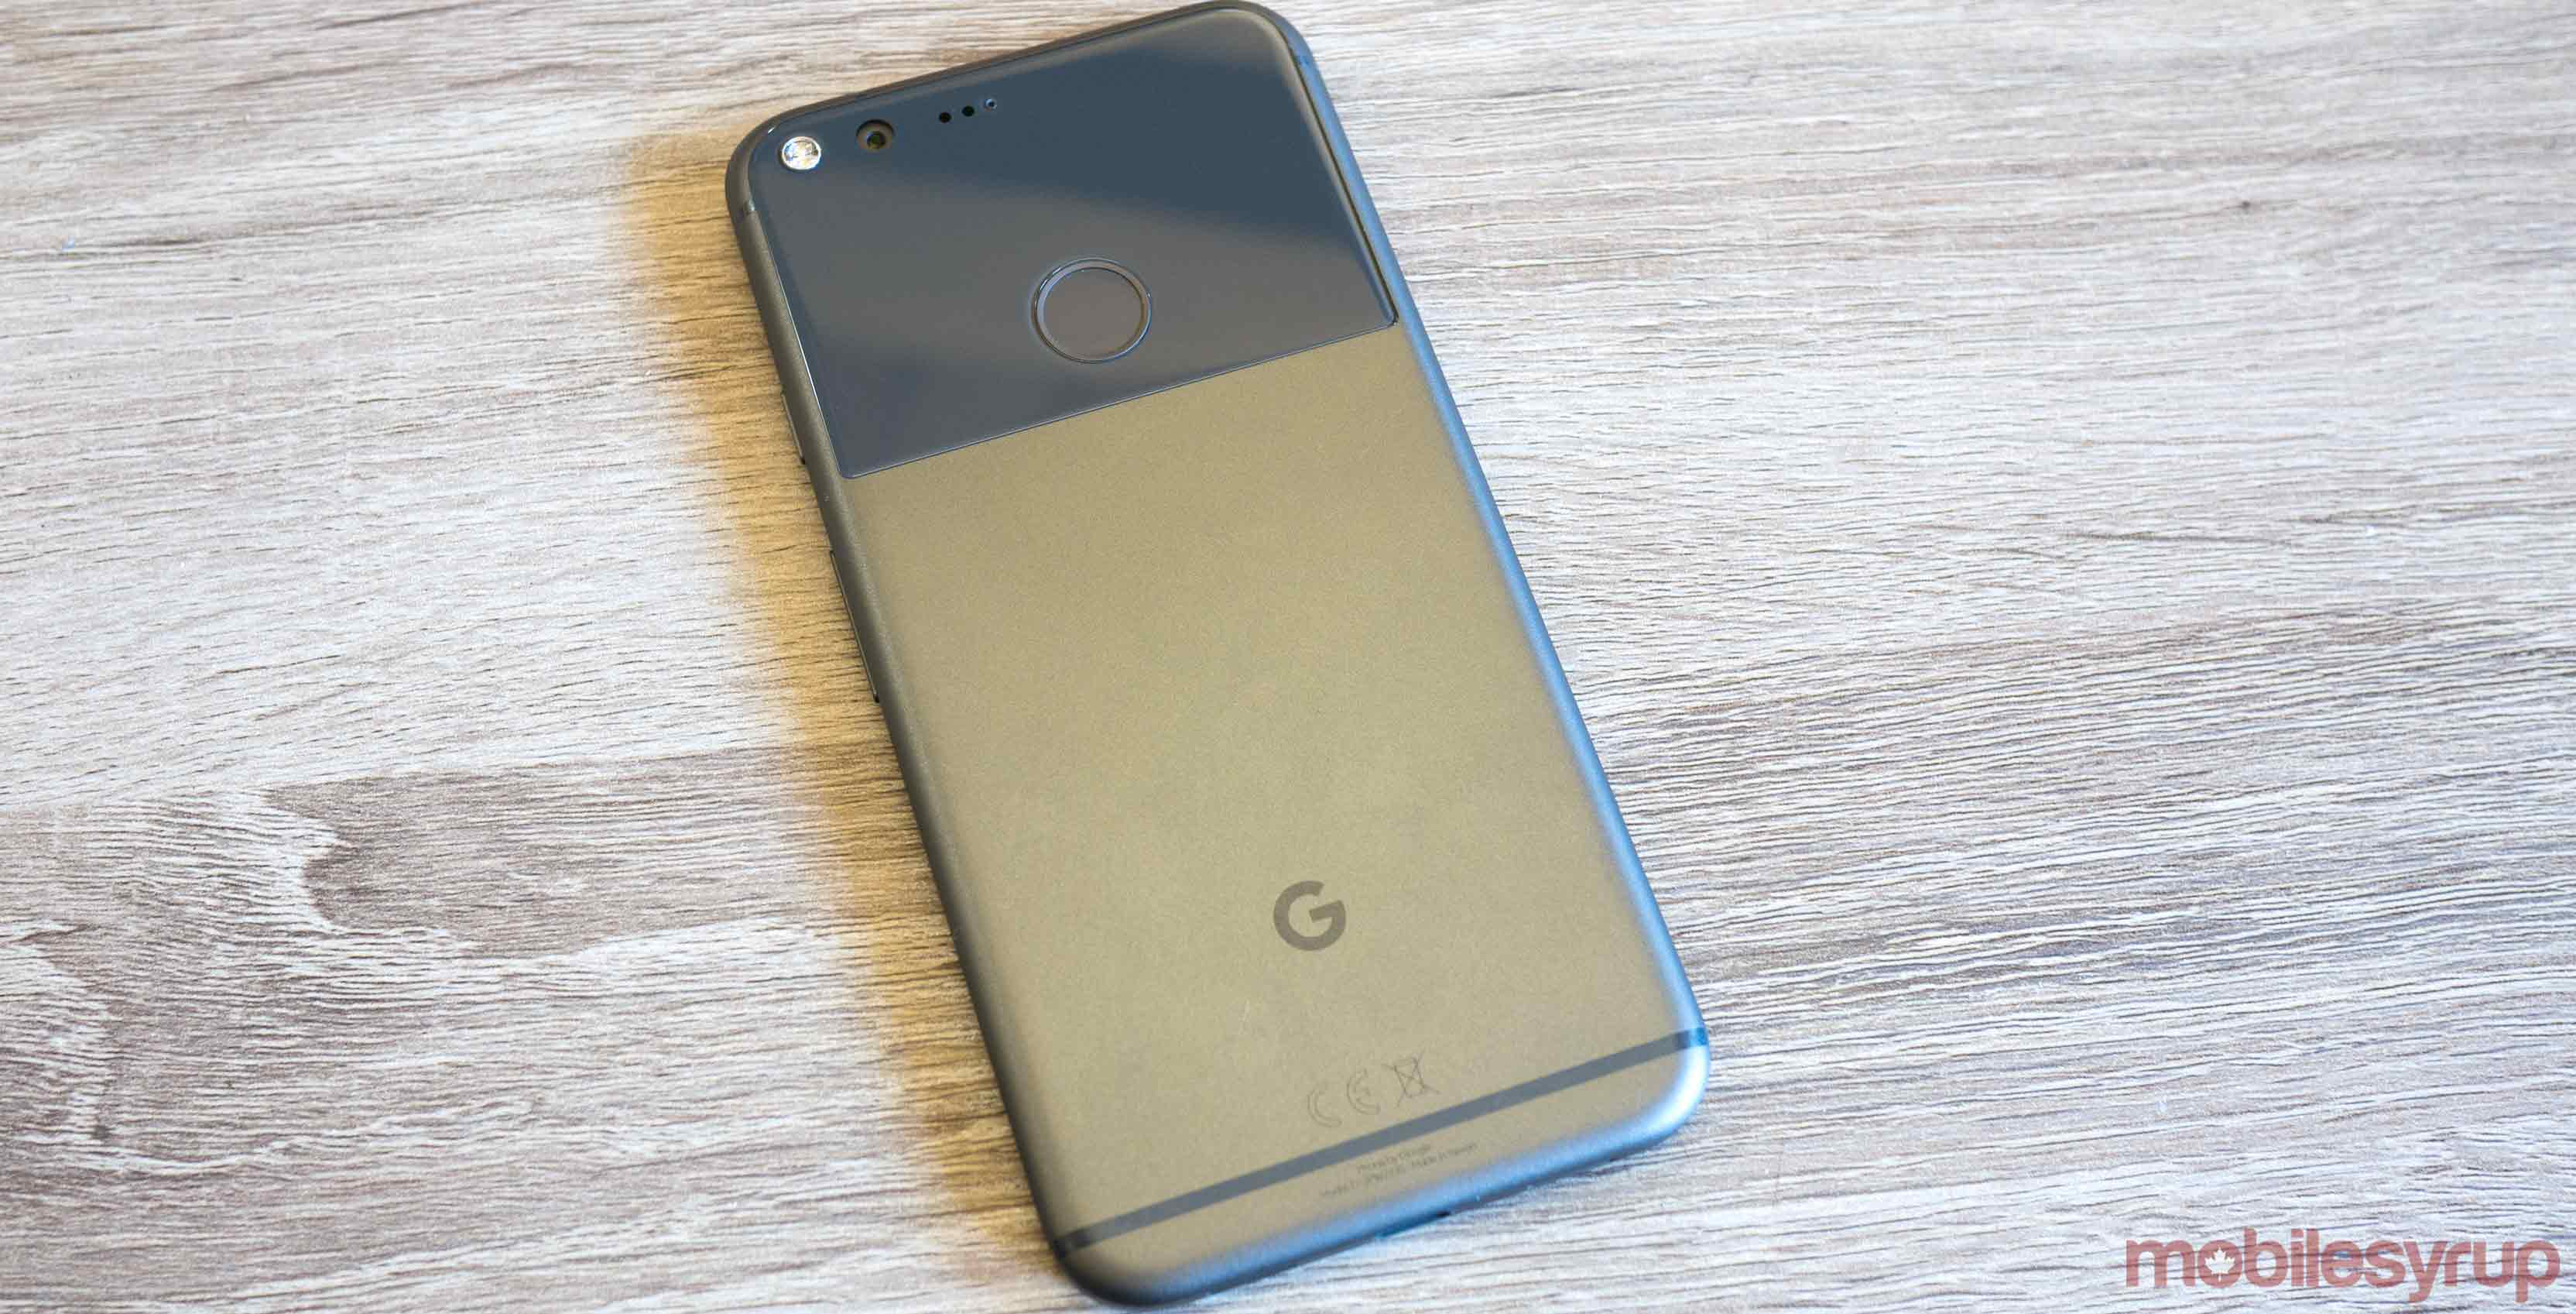 Google's Pixel smartphone now has VoLTE on Rogers